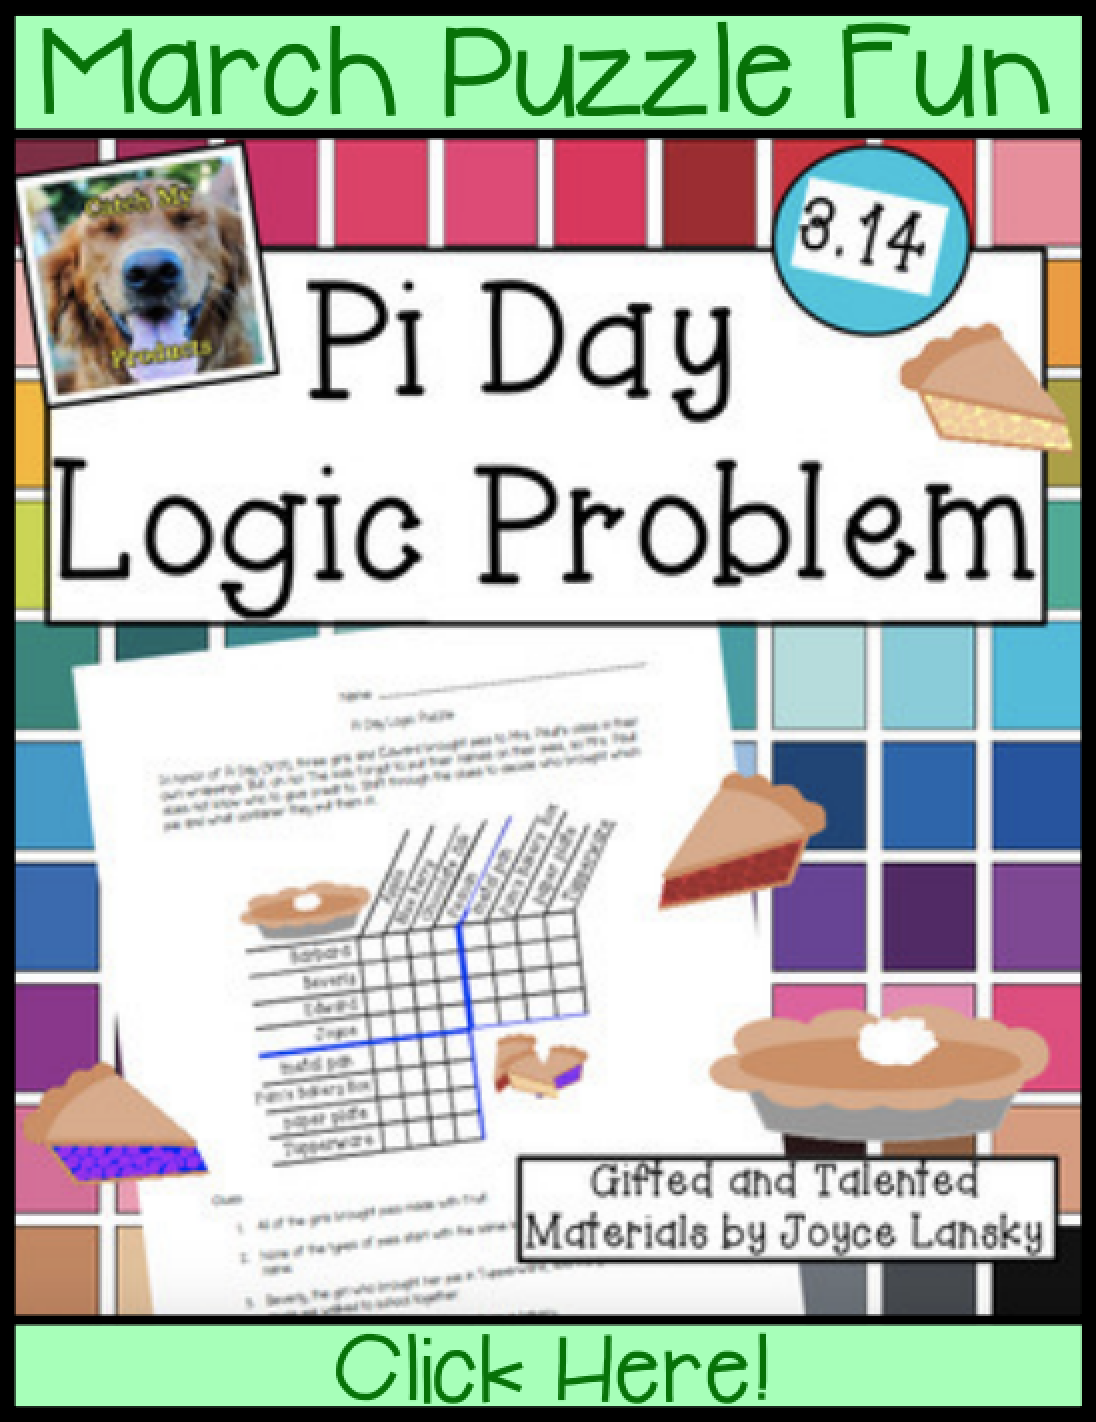 Pi Day Activities : Logic Puzzle | Cheap Ideas for Teachers